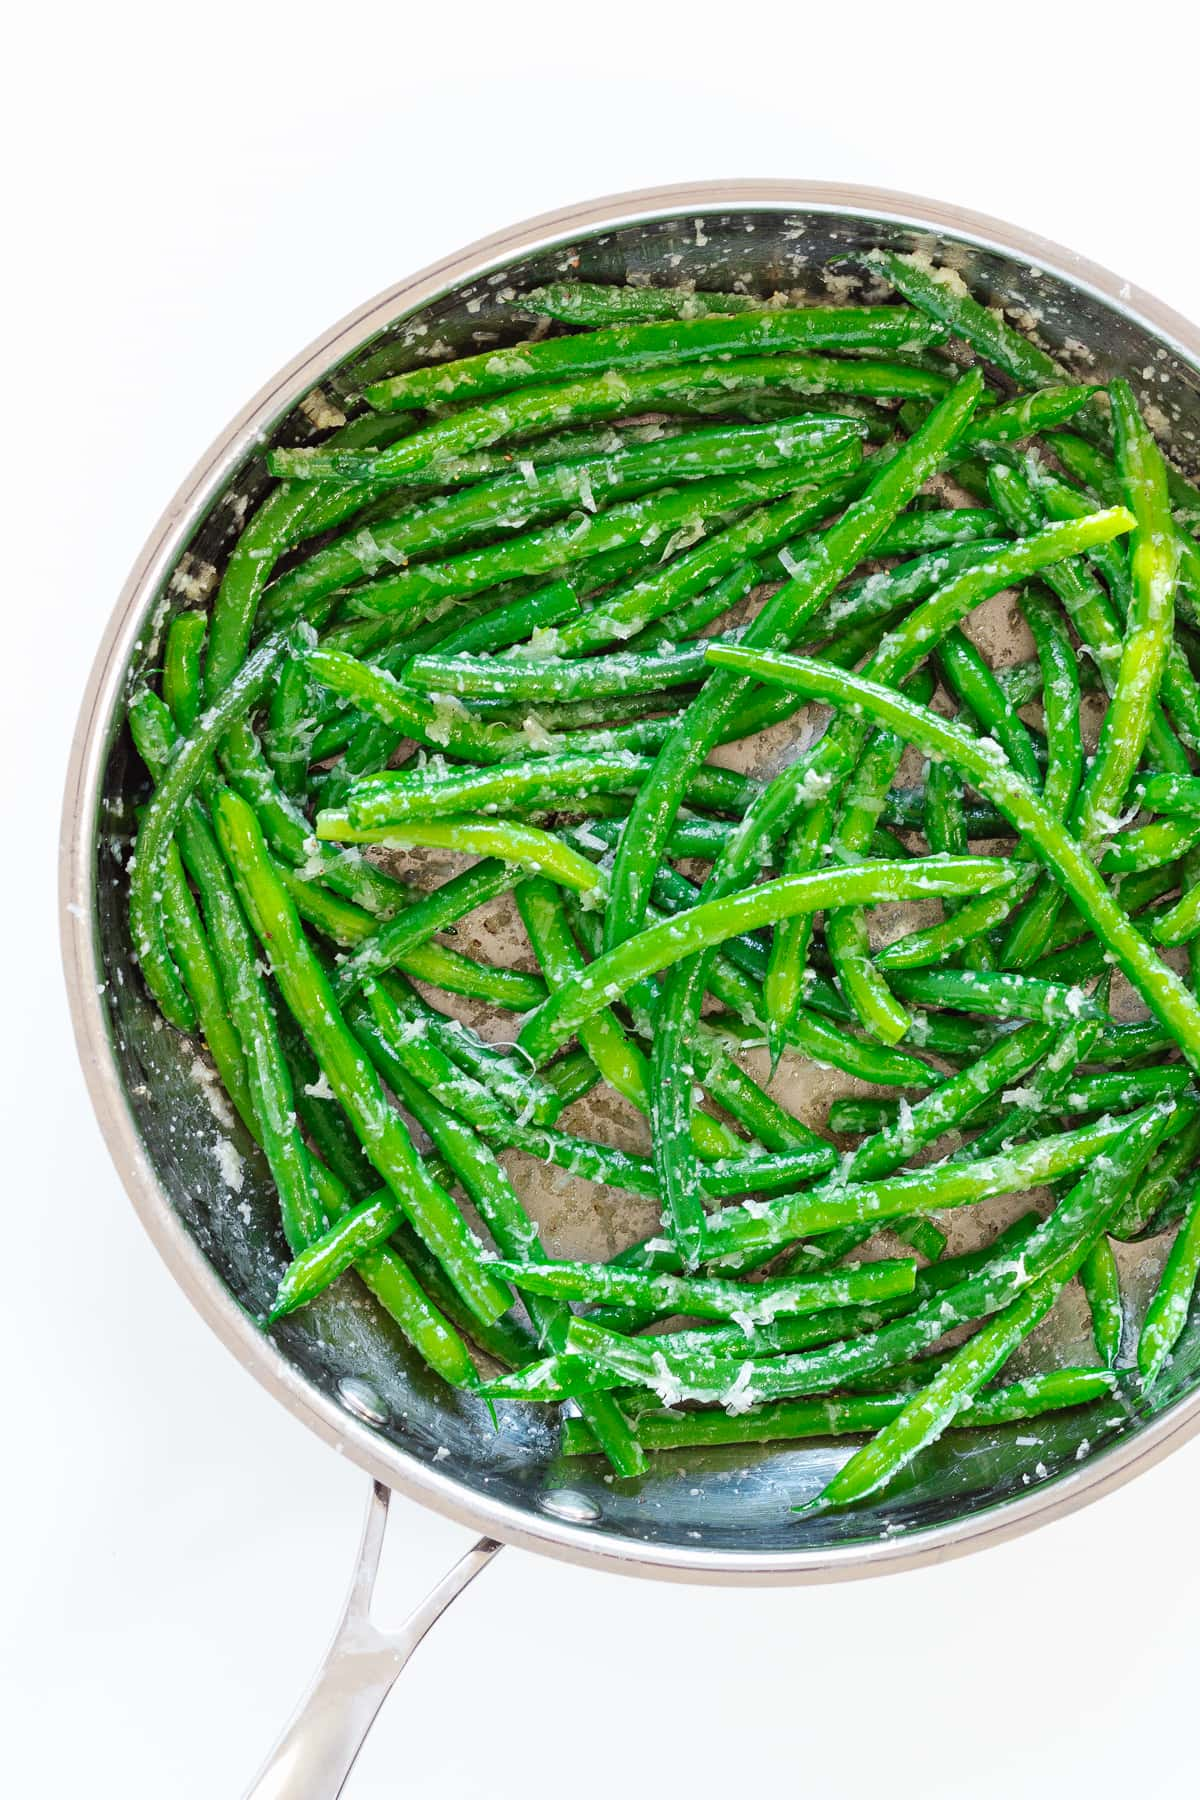 Sauteed green beans in a stainless steel frying pan.